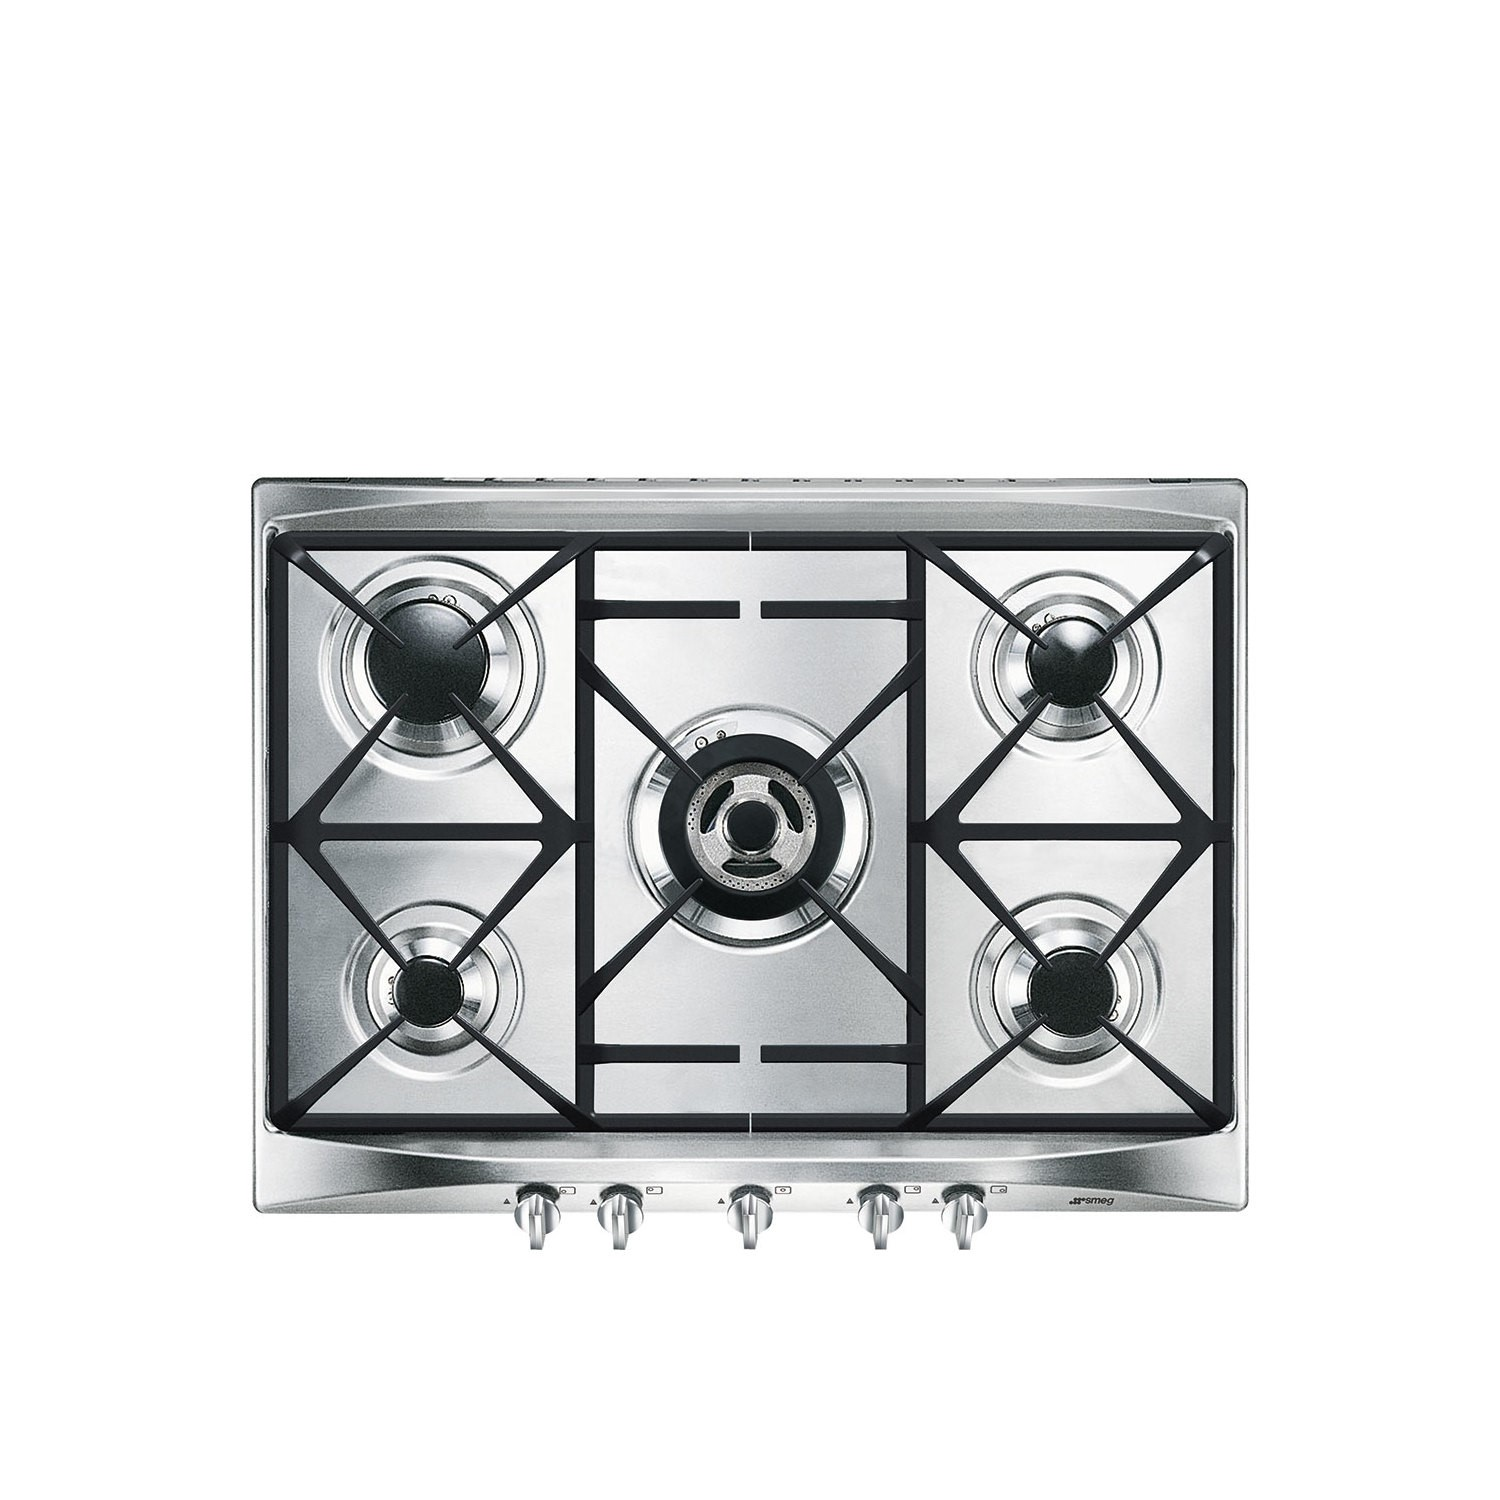 Cucina Kitchen Appliances Smeg Sr275xgh2 Cucina 69cm Stainless Steel 5 Burner Gas Hob With Cast Iron Pan Stands And New Style Controls